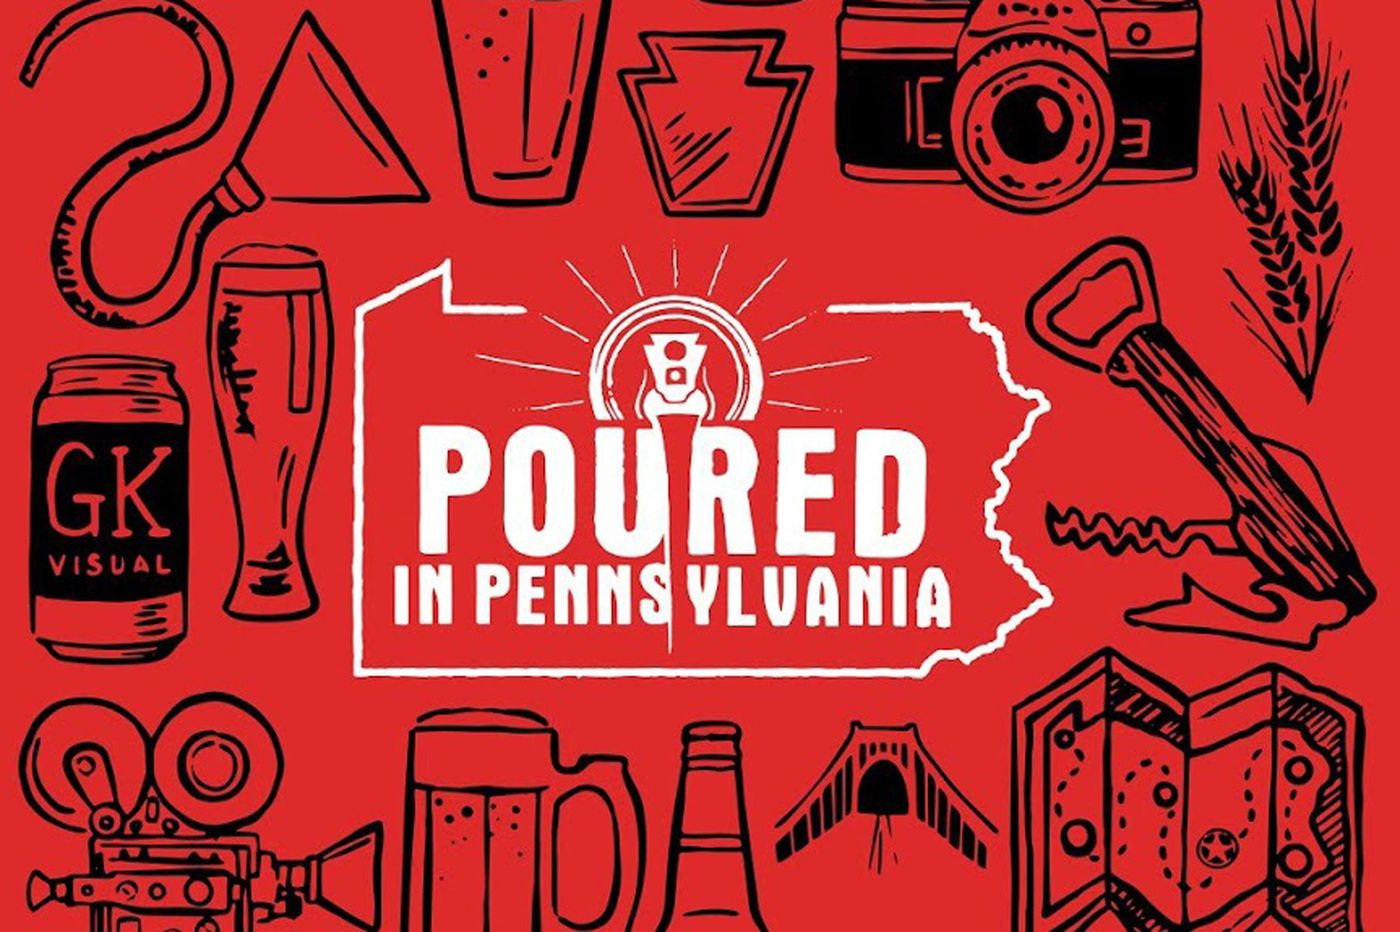 Beer documentary 'Poured in Pennsylvania' is now on Amazon Prime, and a series is brewing